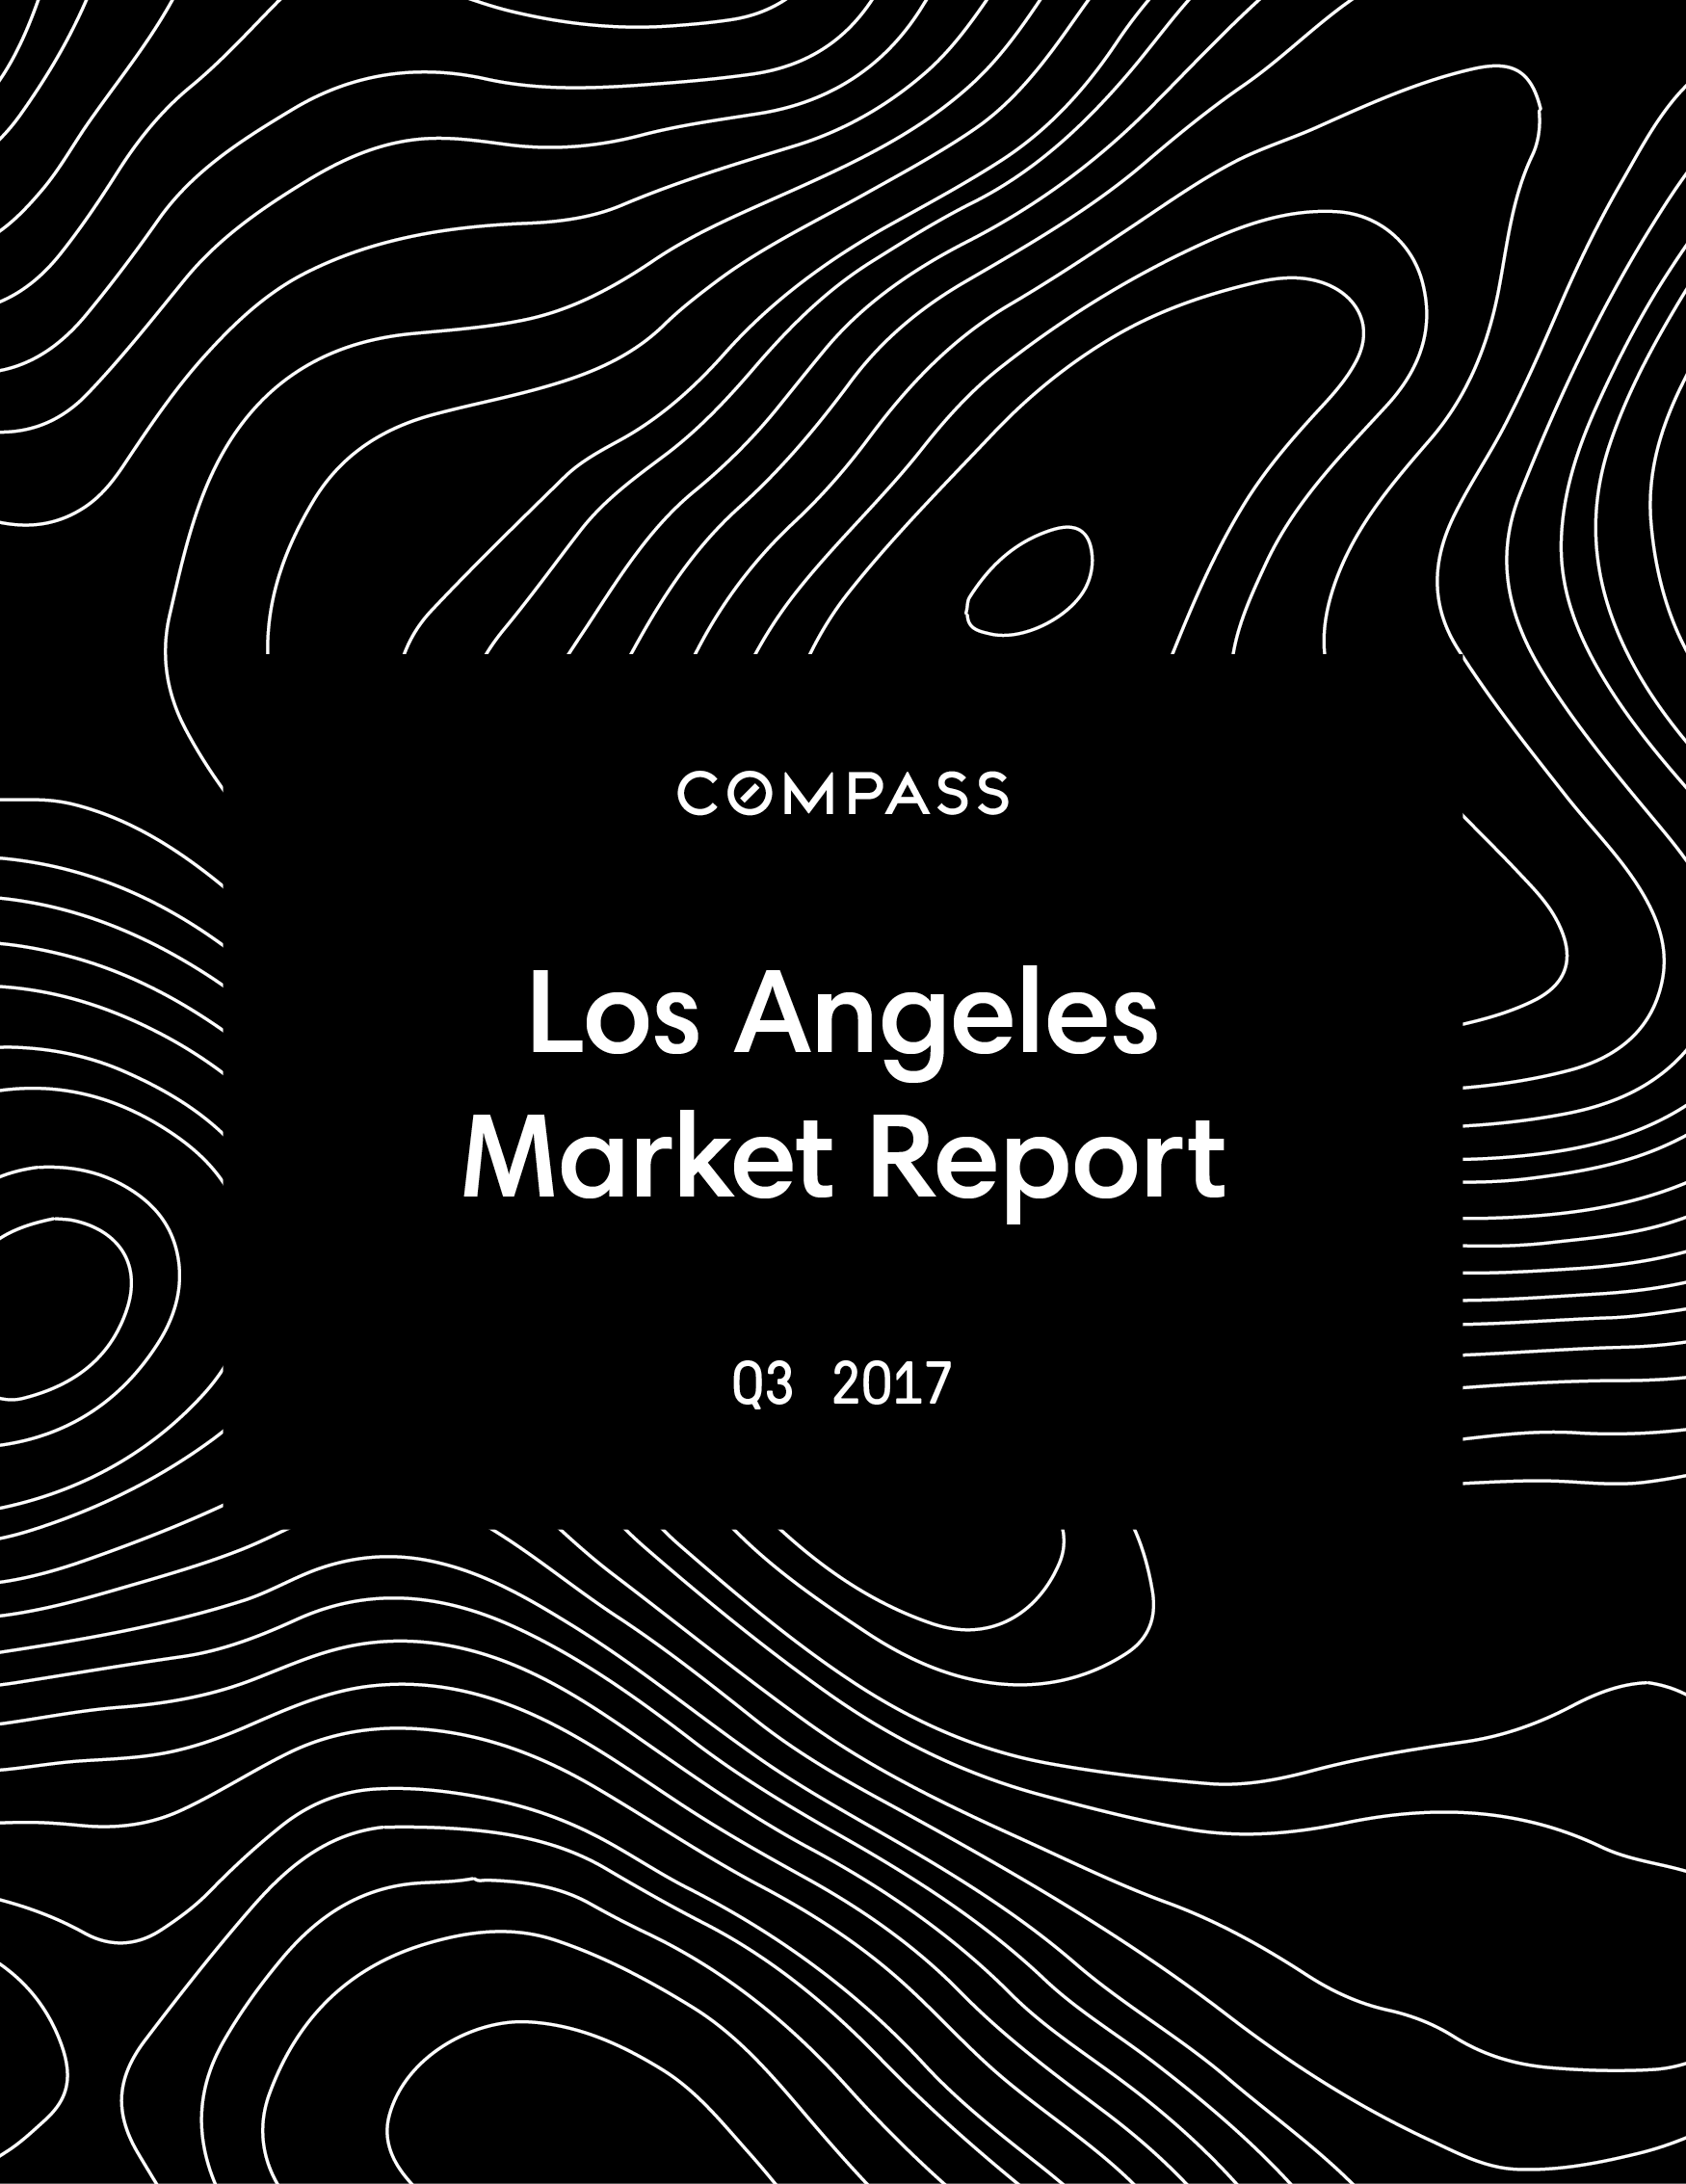 Los Angeles Market Report - Q3 2017